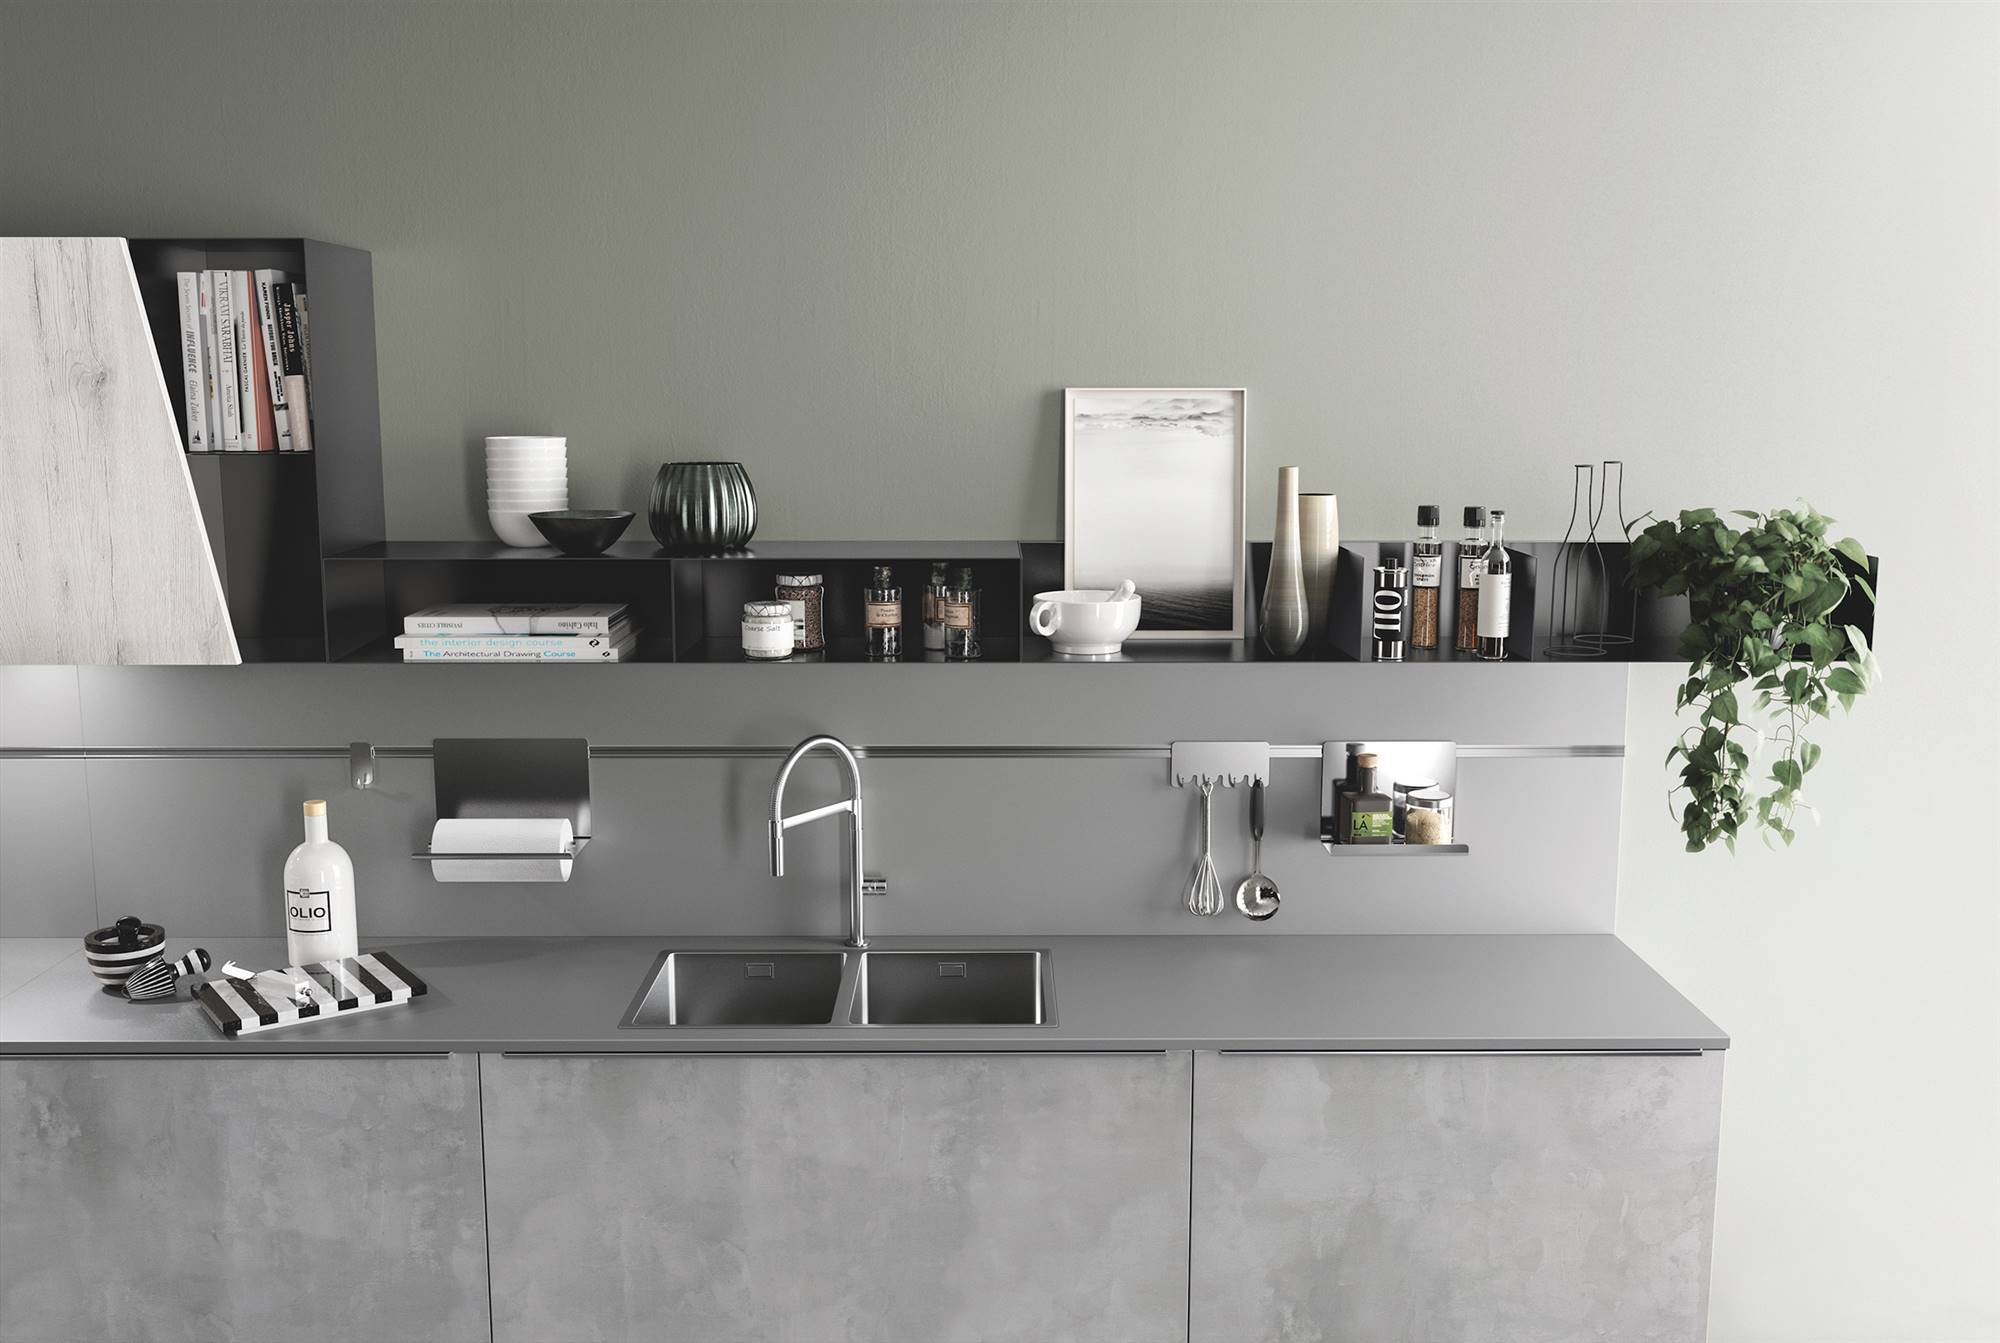 10 Kitchens with shelves.  Kitchens with shelves